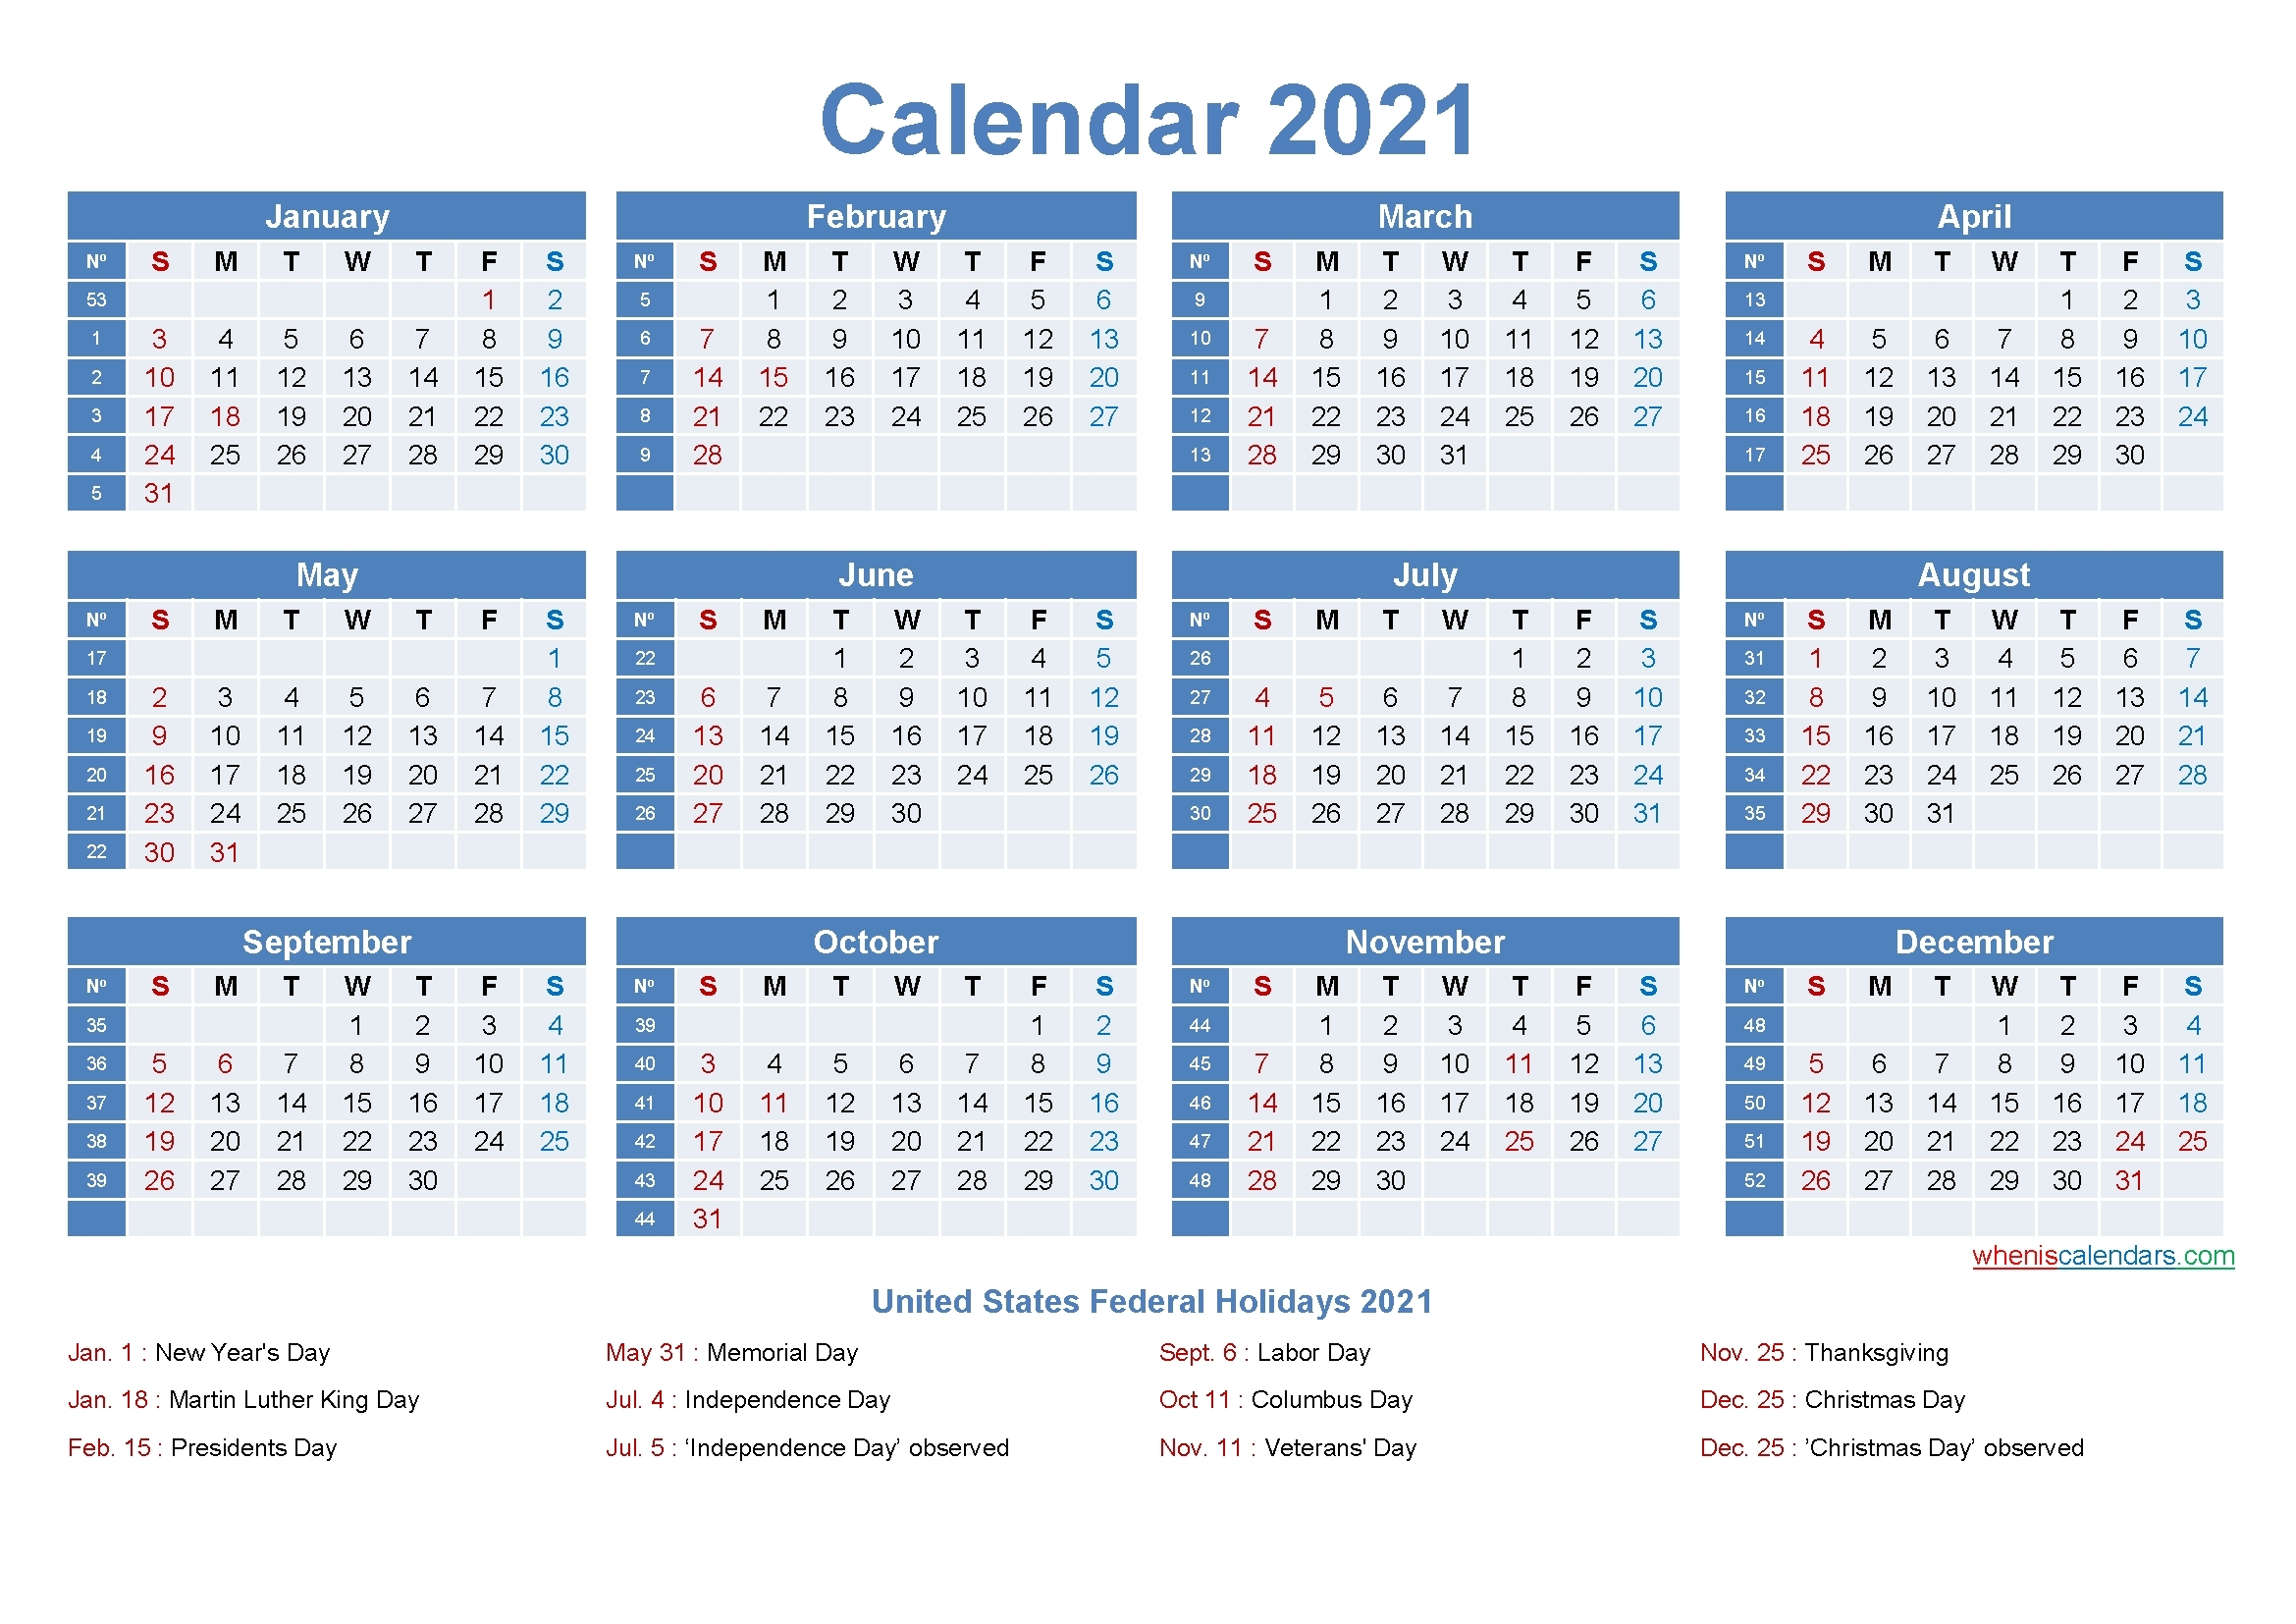 2021 Calendar Template With Numbered Weeks - Example Calendar Printable throughout Printable 2021 Monthly Calendar Template Image